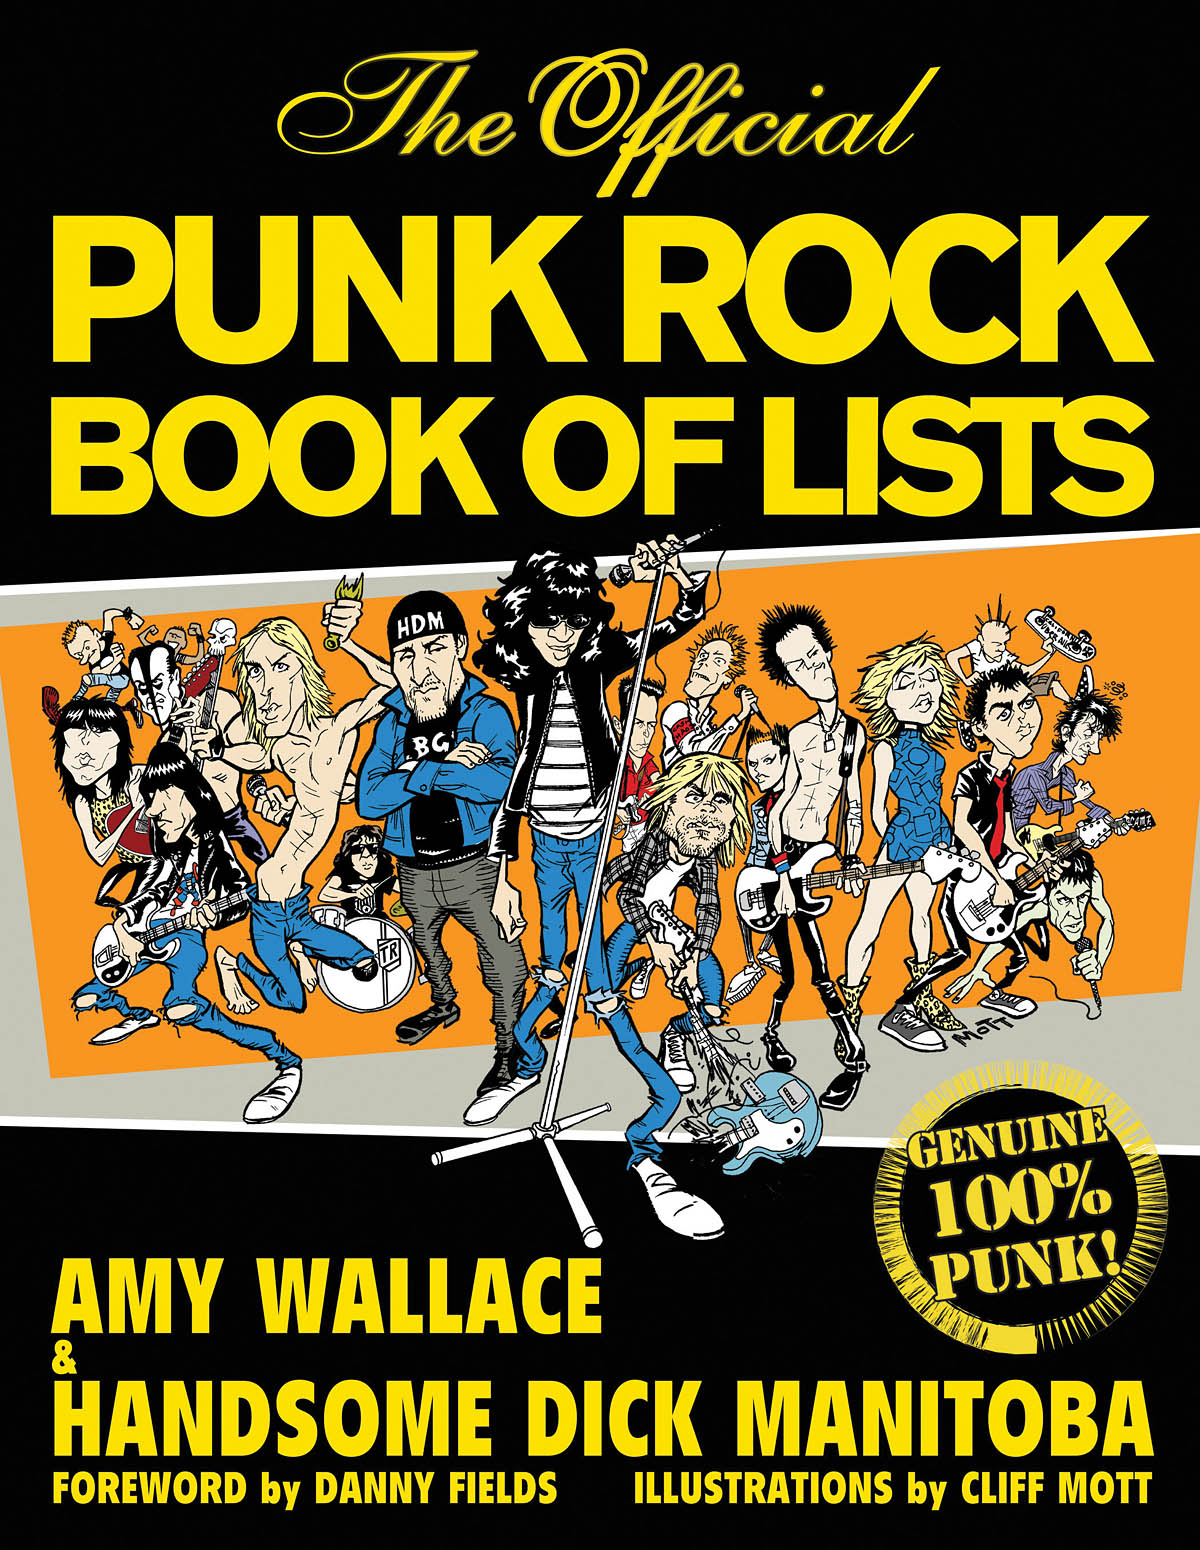 The Official Punk Rock Book Of Lists: Reference Books